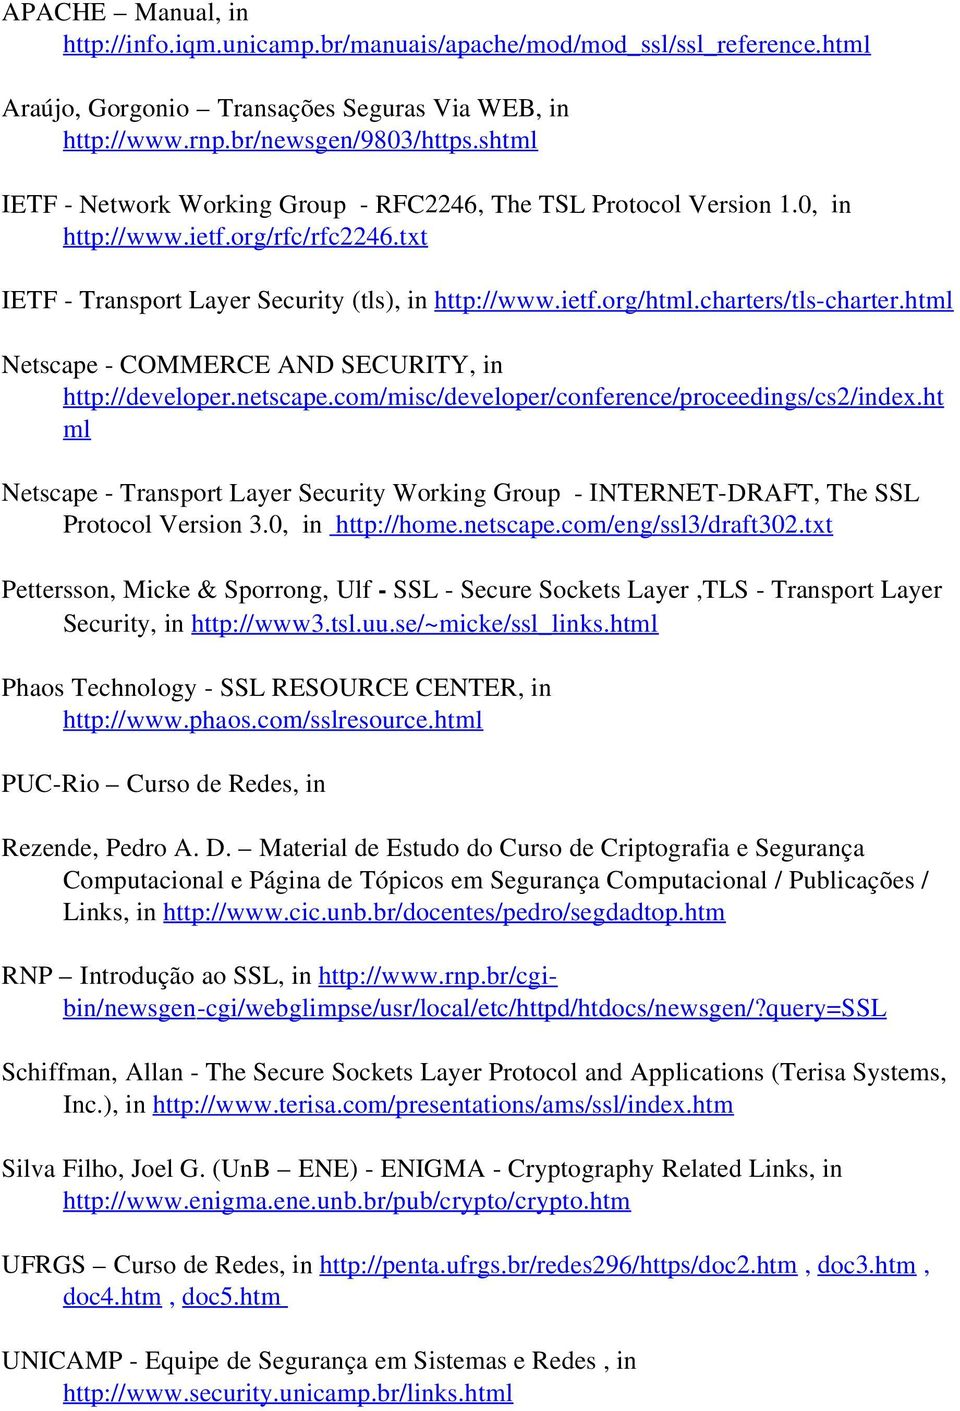 charters/tls-charter.html Netscape - COMMERCE AND SECURITY, in http://developer.netscape.com/misc/developer/conference/proceedings/cs2/index.